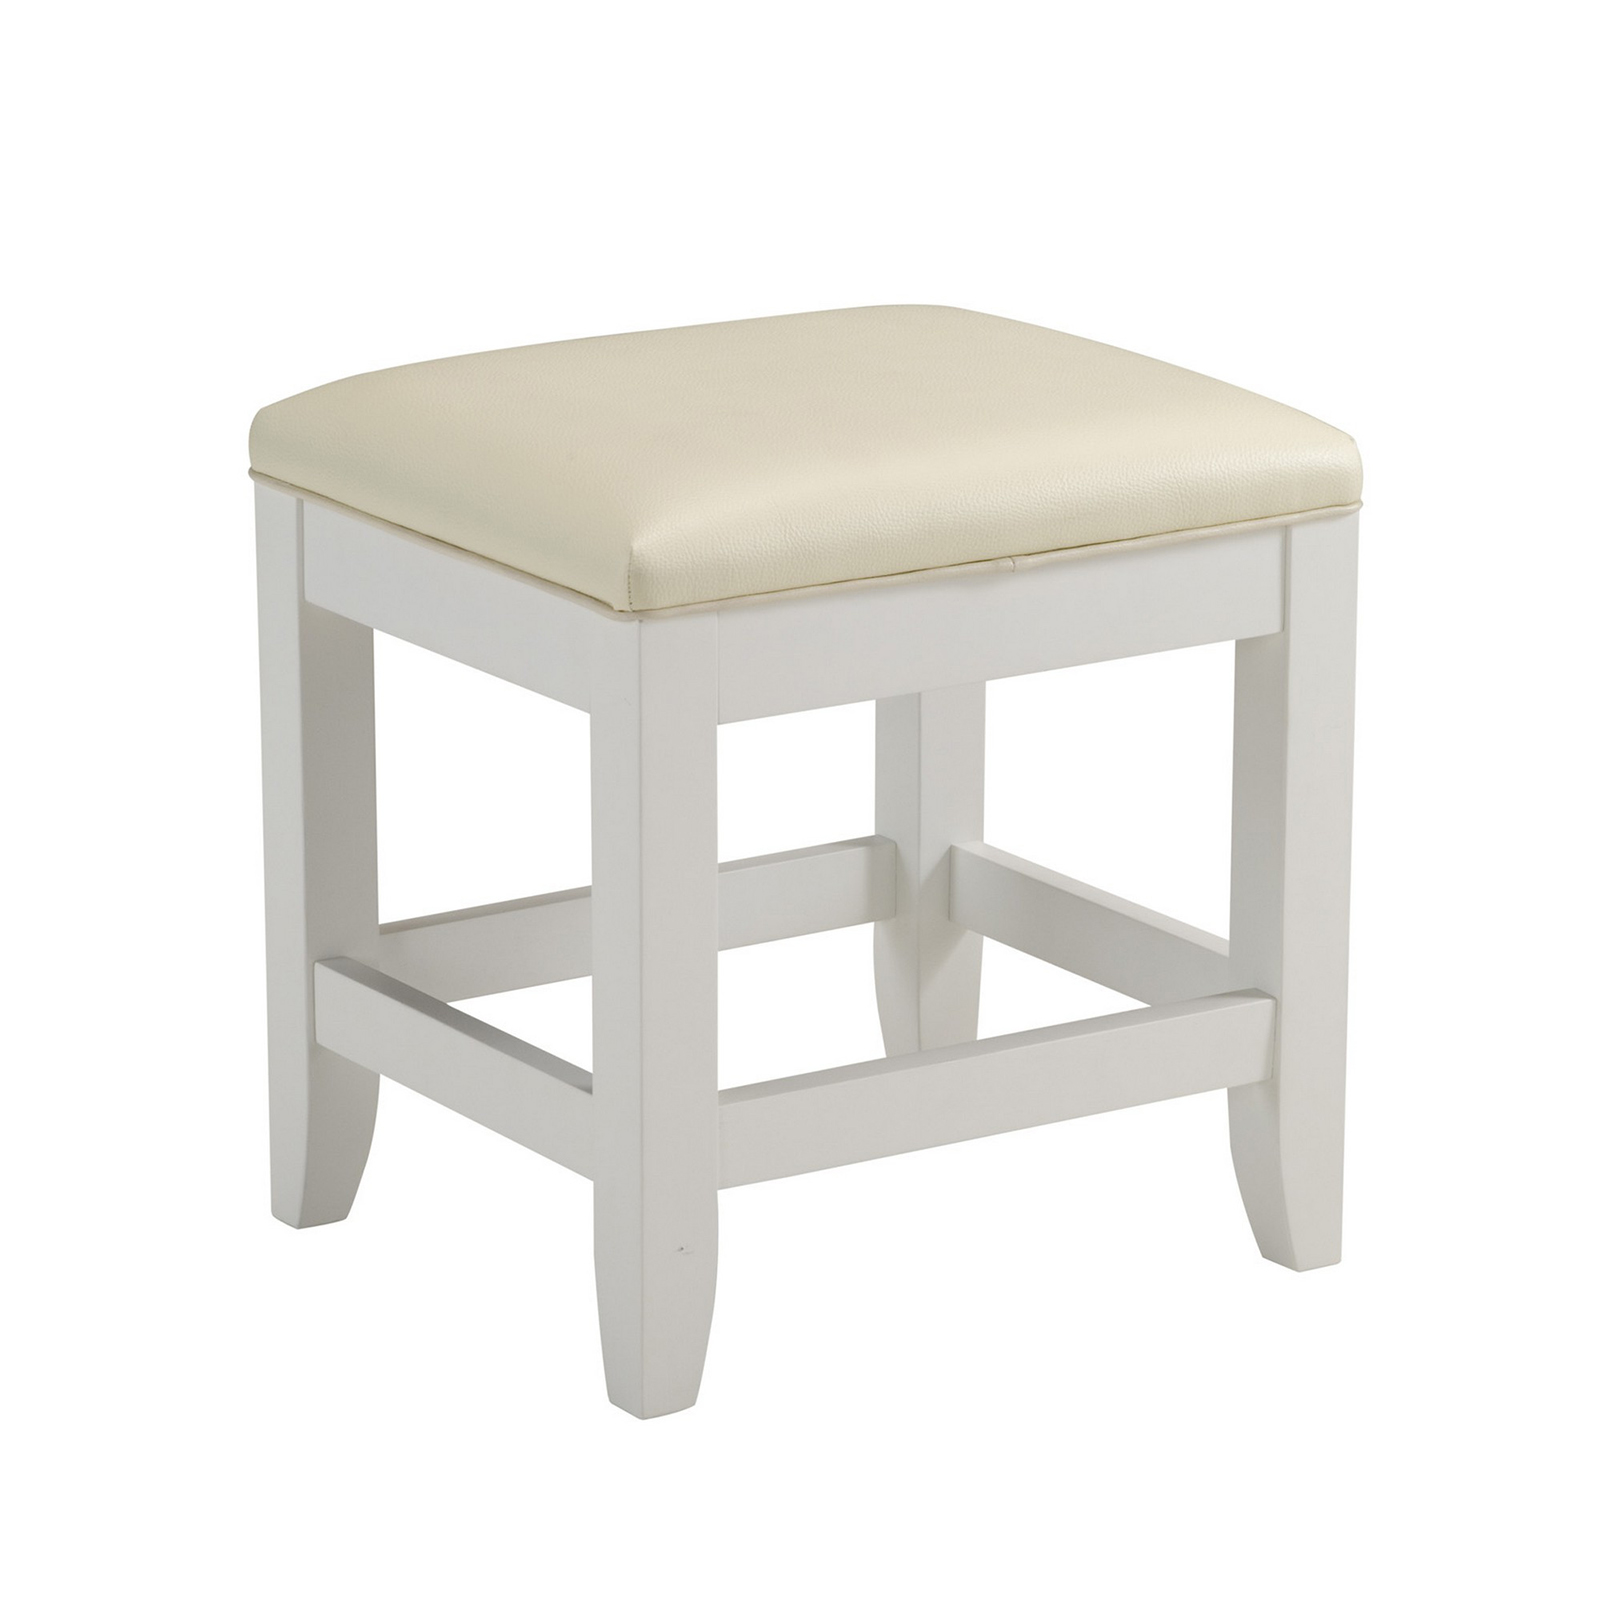 Home Styles Naples White Hall Tree with Storage Bench | Hayneedle